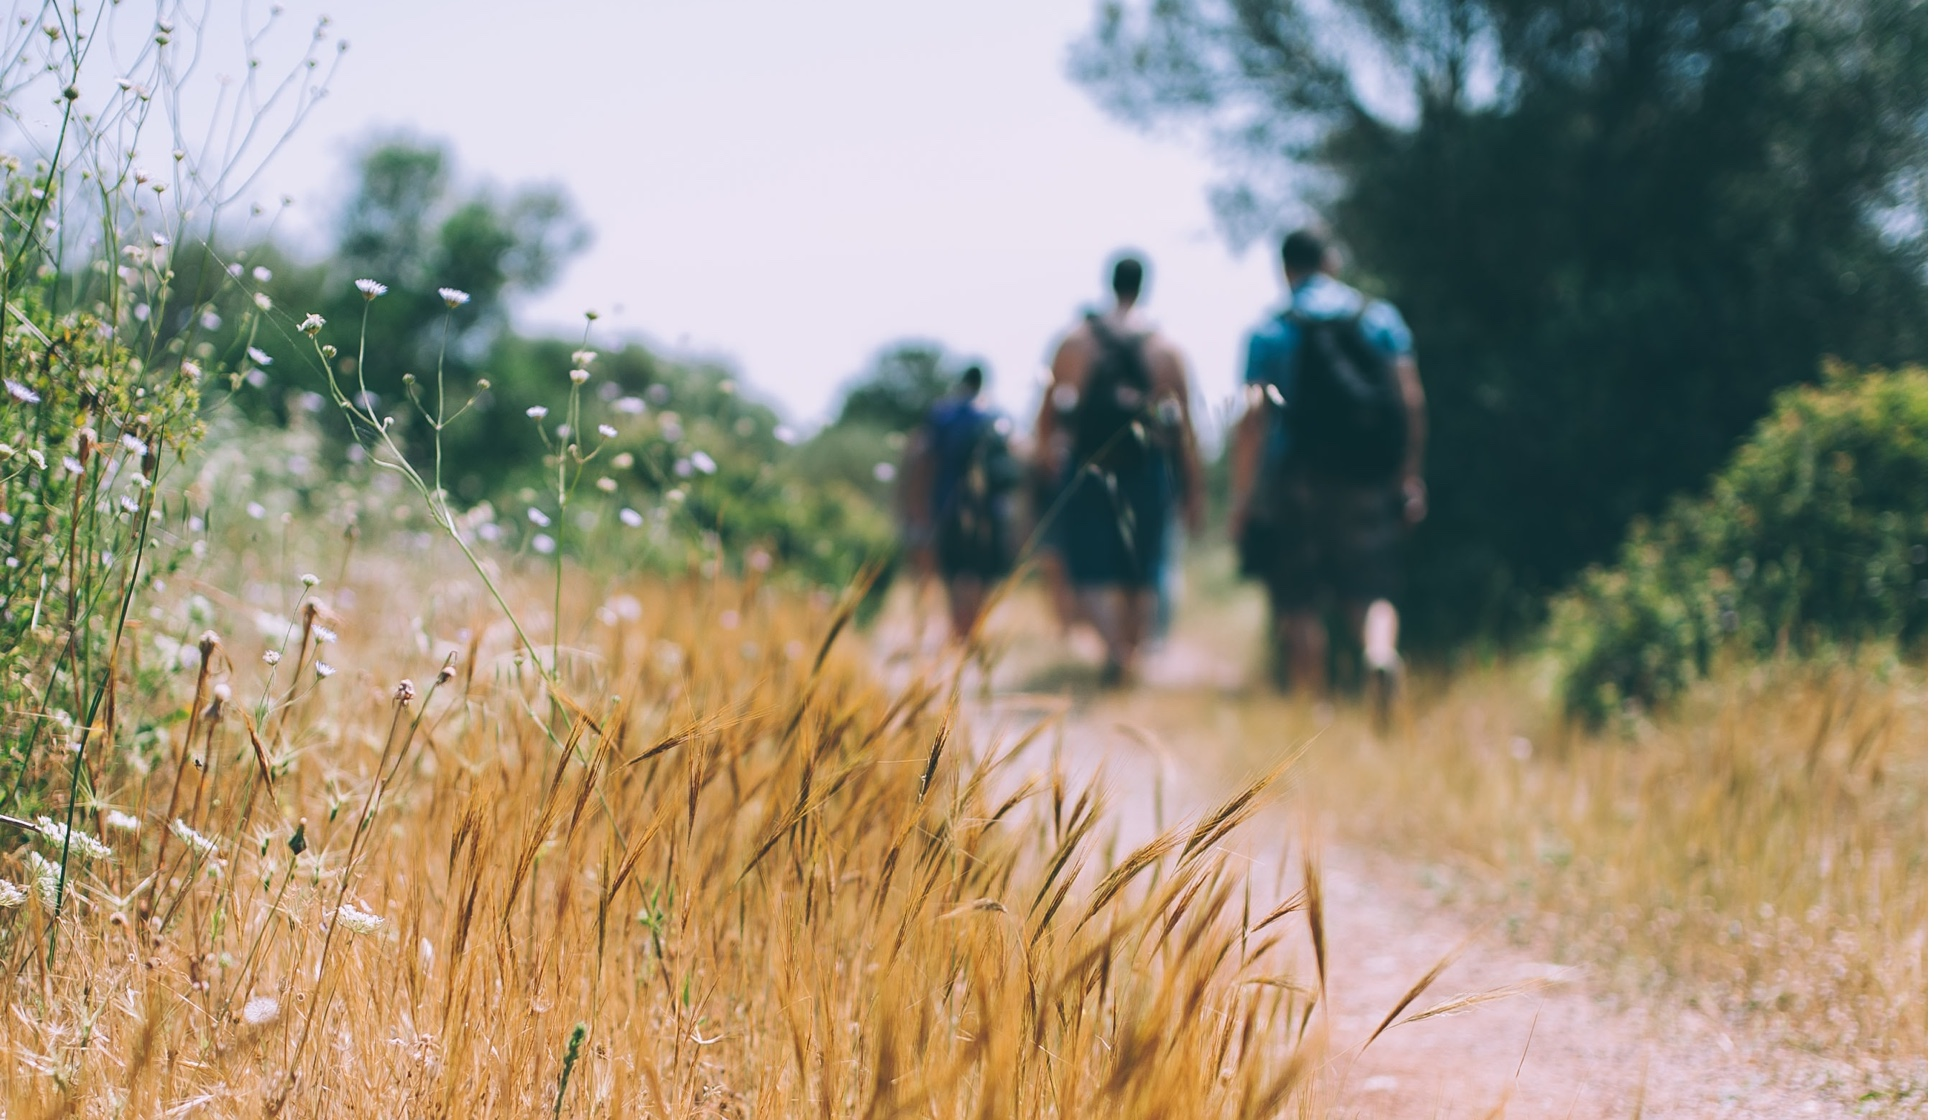 People walking on trail with wildflowers and backpacks